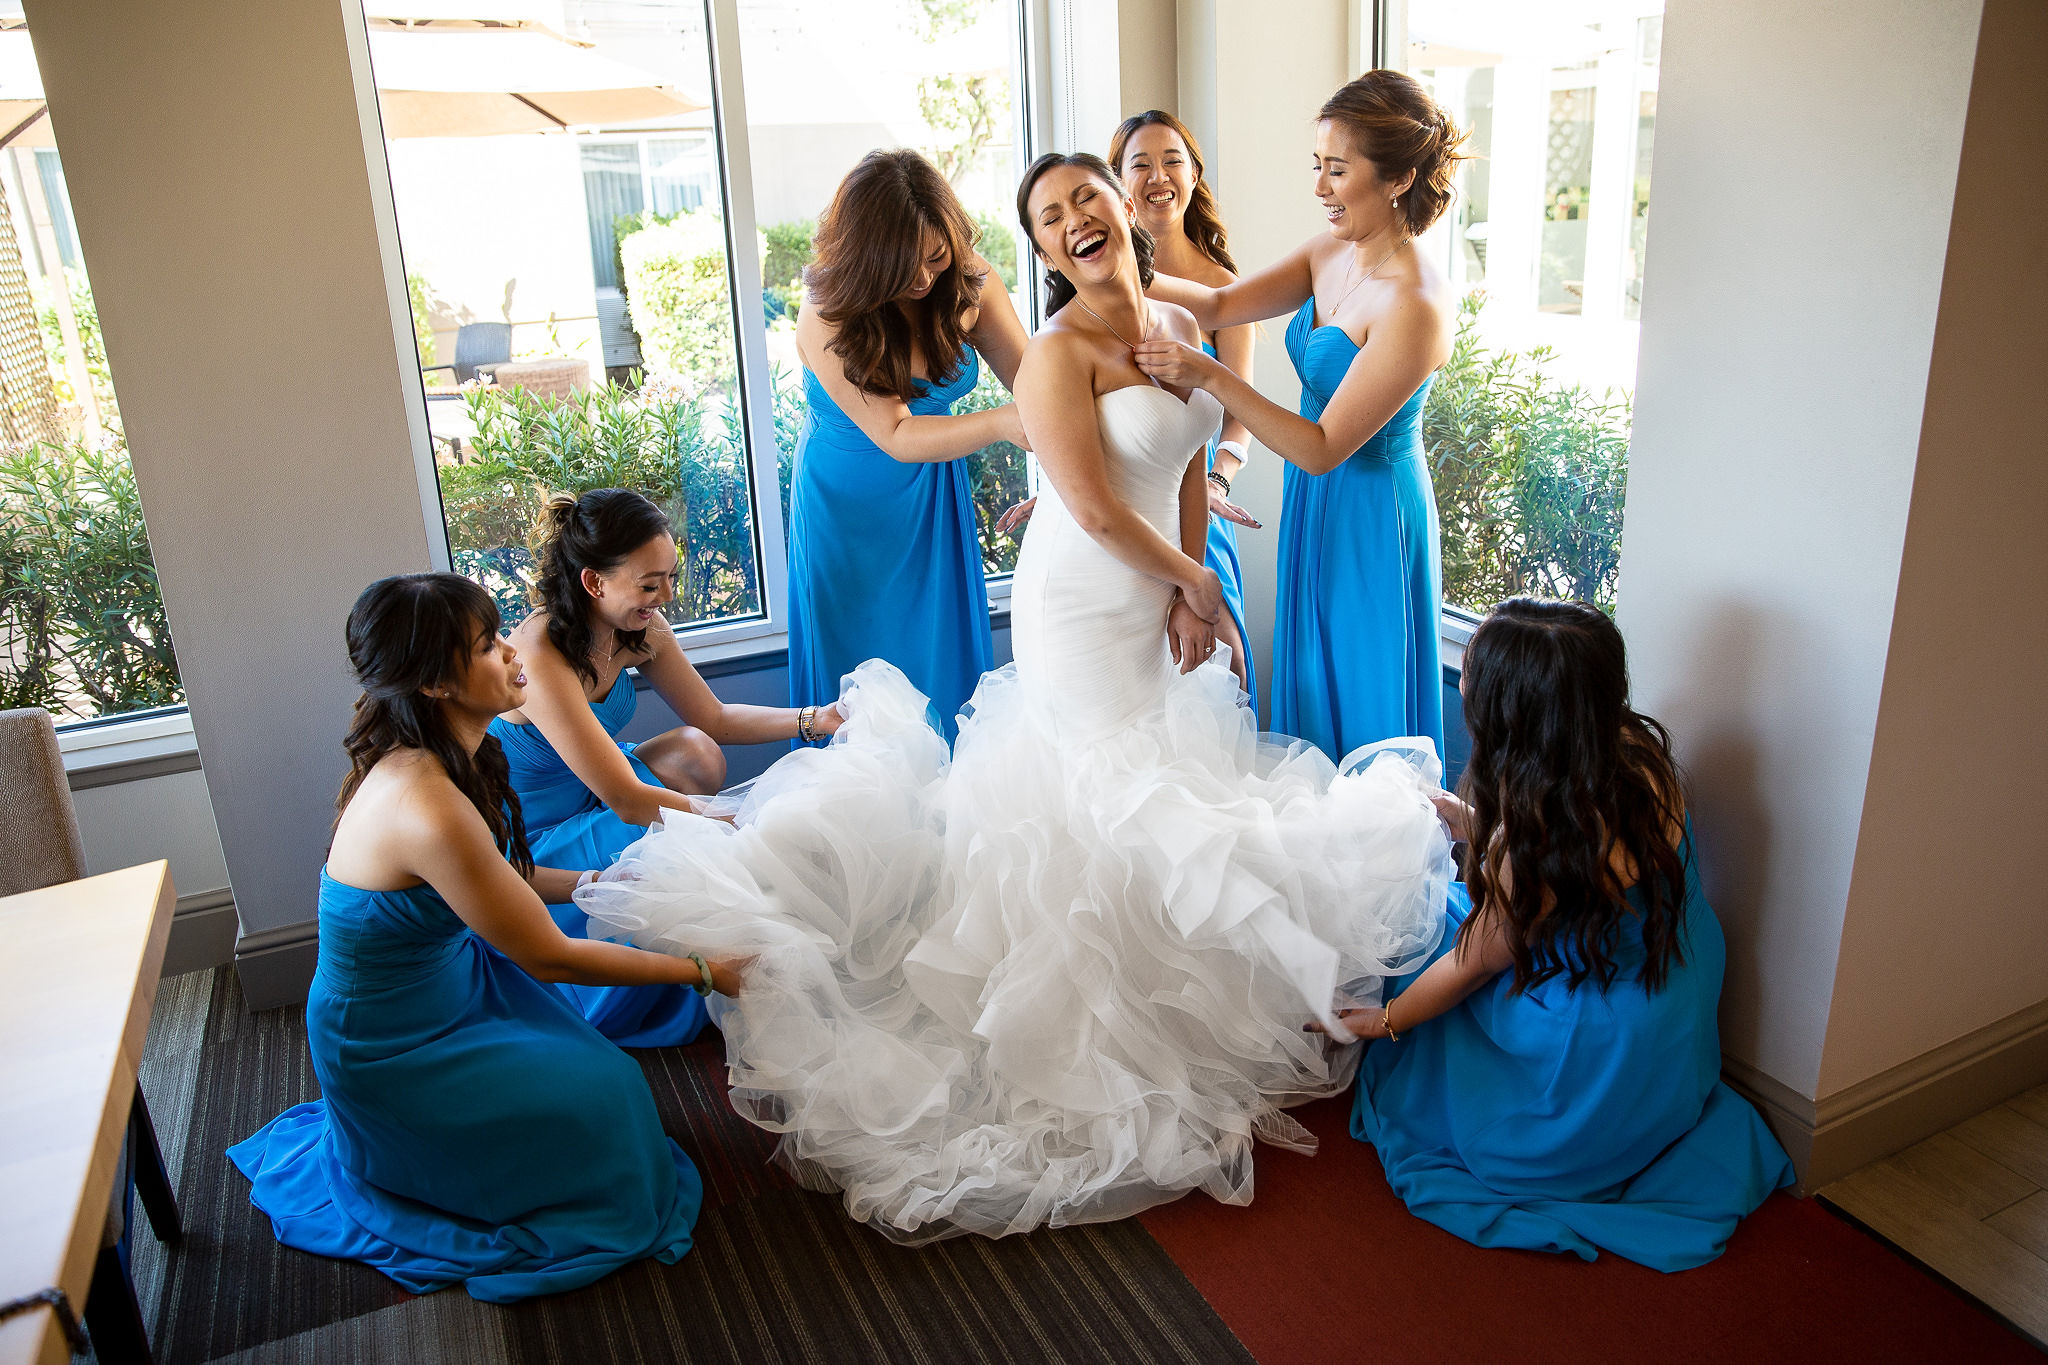 The bridesmaids were just making sure she's all put together and ready to marry her man. Apparently it is a very fun activity :D